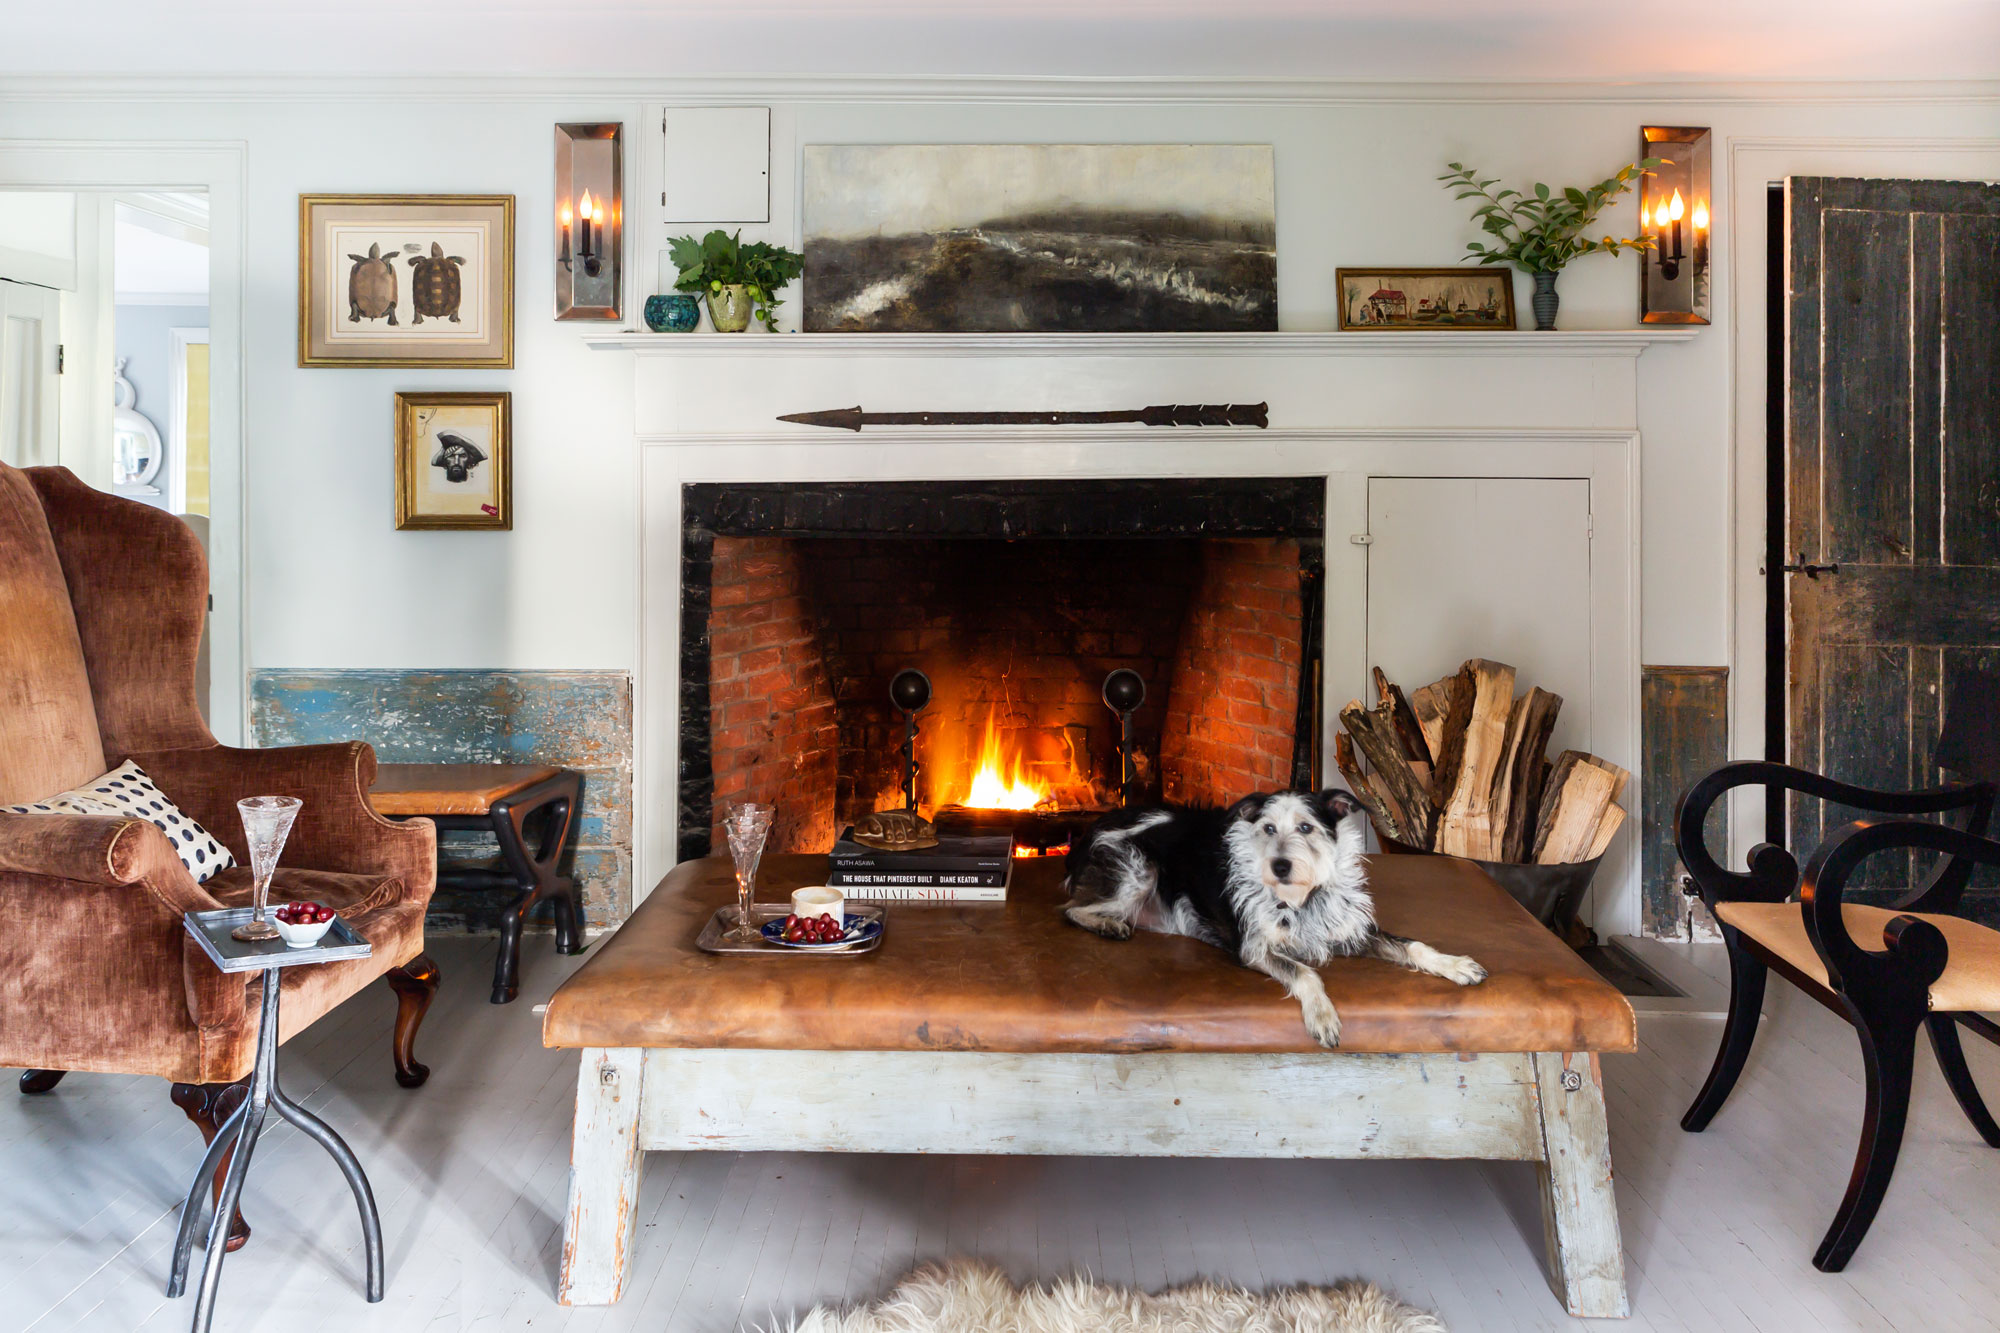 """The Randalls are a family of six: Natalie, Greg, their three kids, and Willa. """"The interior designer Bunny Williams, she's a friend of ours, and she has all of these scruffy little rescue dogs, and I said to her one day, 'Oh, I love all of your dogs,' and she said, 'I'm going to find you a dog,'"""" Natalie says. """"She actually sent me some tear sheets of scruffy little dogs, and that's how we found Willa. She came up on a bus from Georgia. She's our mascot. She comes to work with us every day."""""""